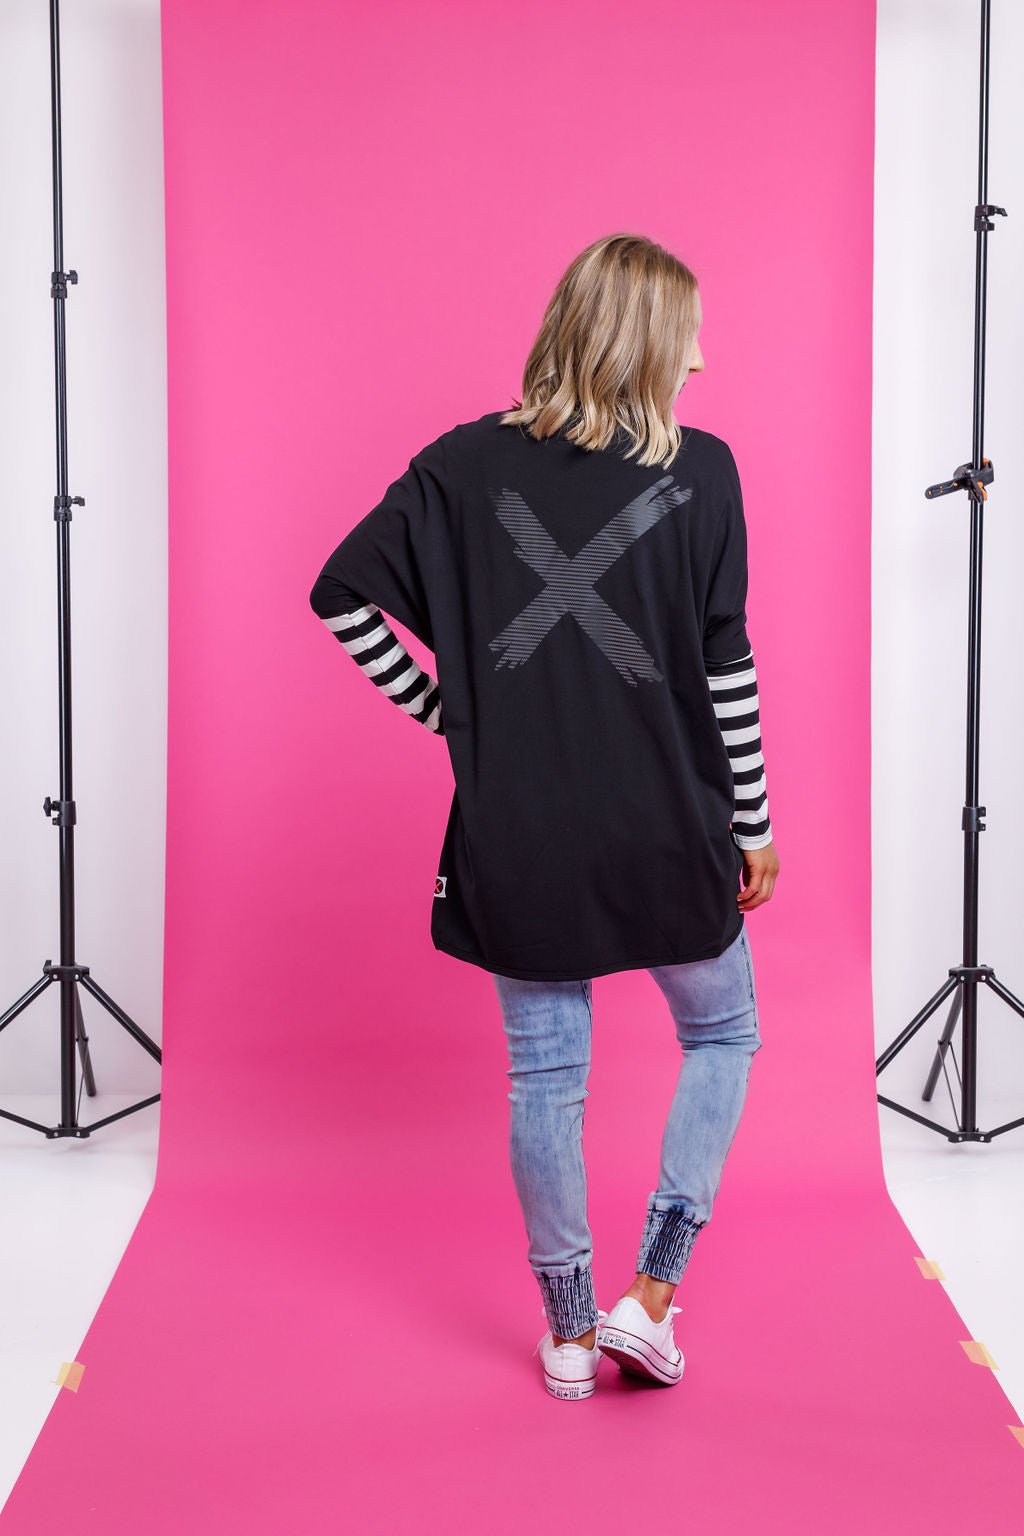 LONG SLEEVE BATWING CARDI - Black with Black X print